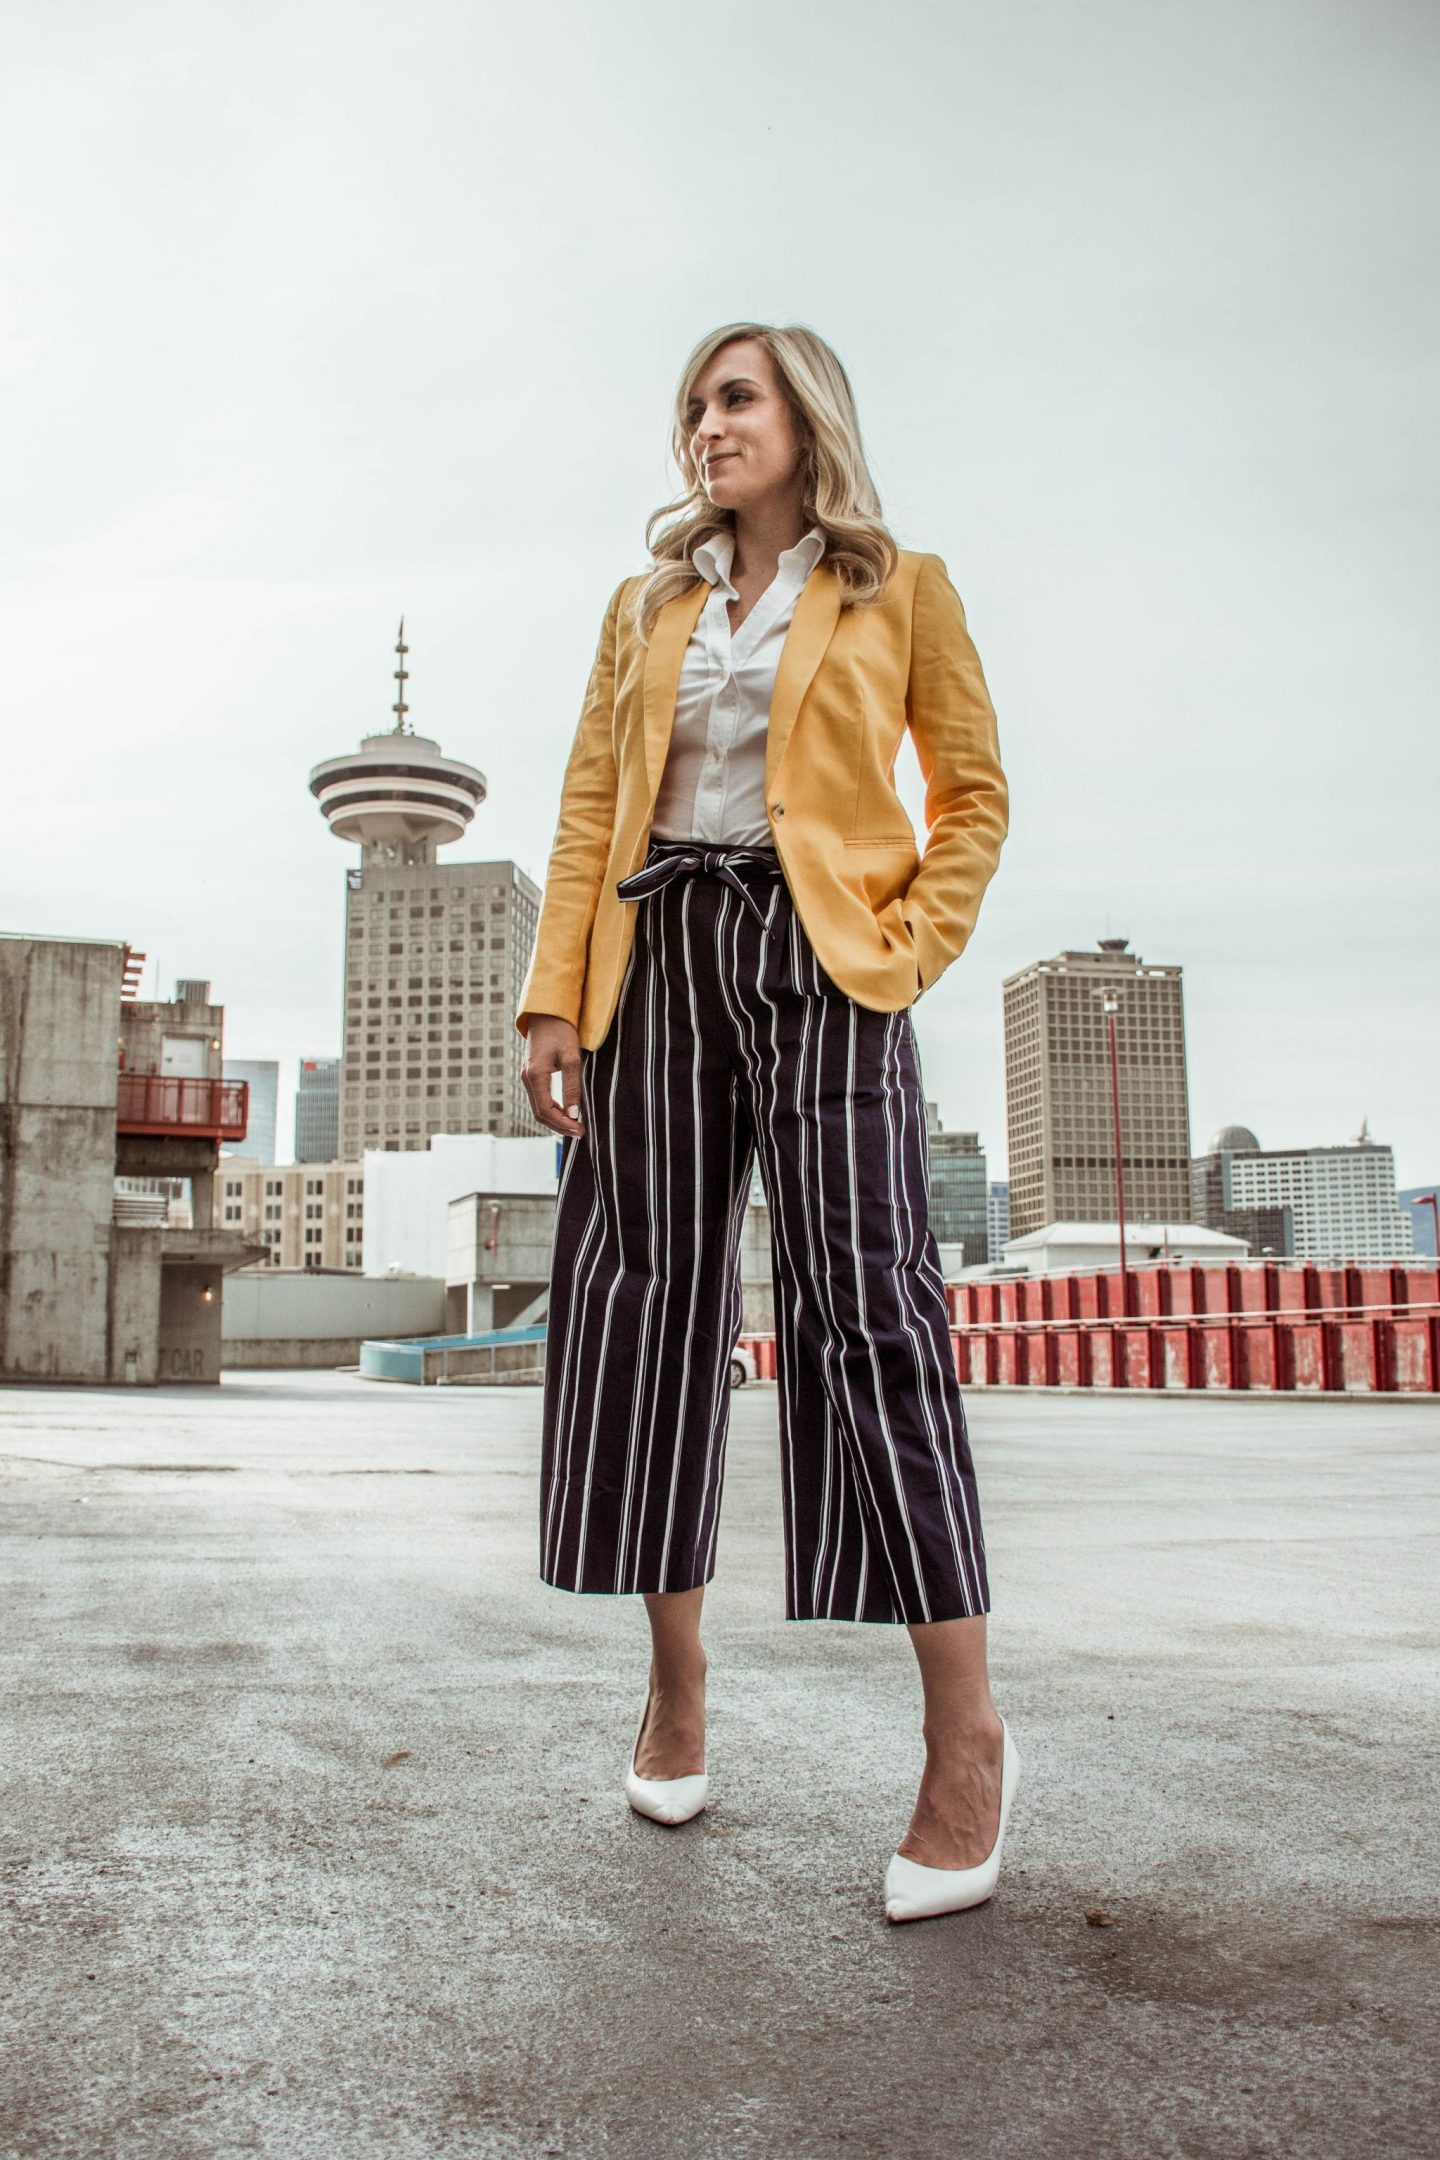 legallee blonde fashion blogger wearing yellow blazer and striped culotte pants